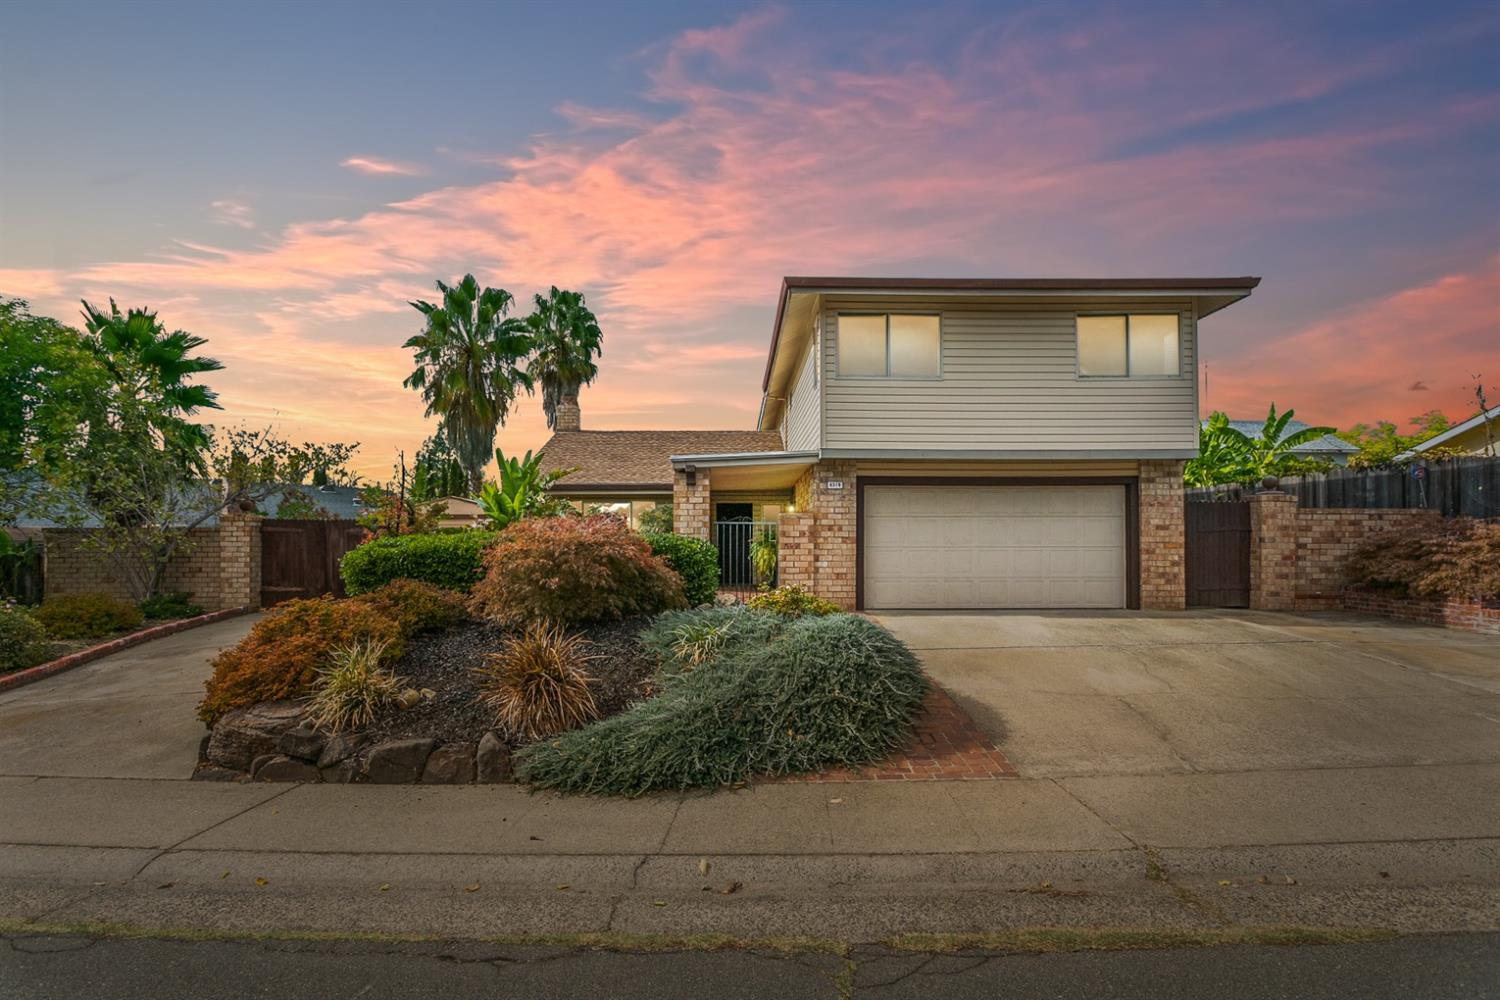 Wonderful move-in ready home boasts great features. This home greets you with lush landscaping, beau